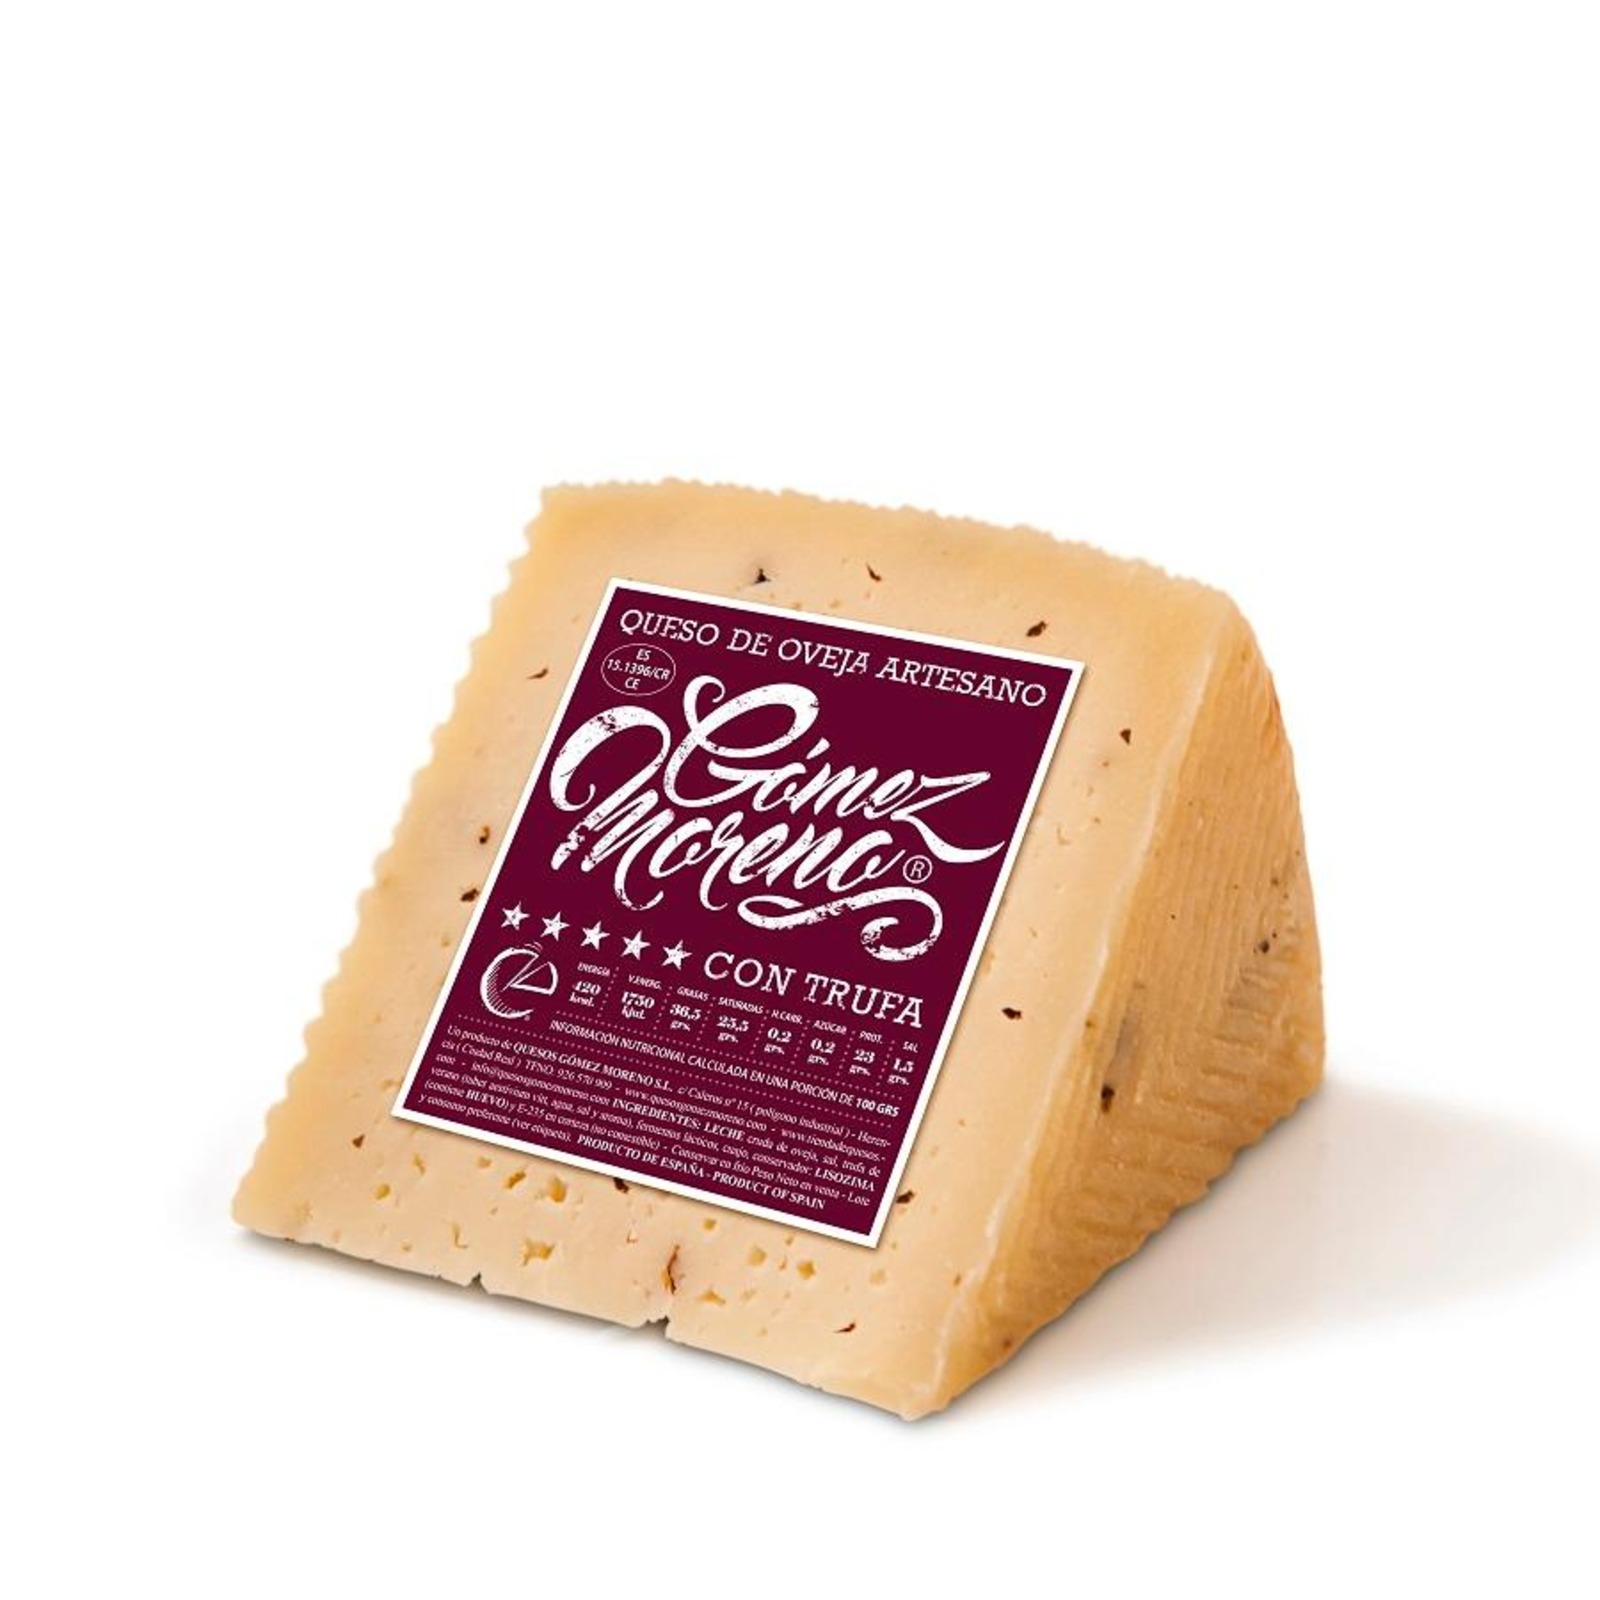 Quesos Gomez Moreno Truffle Manchego Style Spanish Cheese- By TANINOS